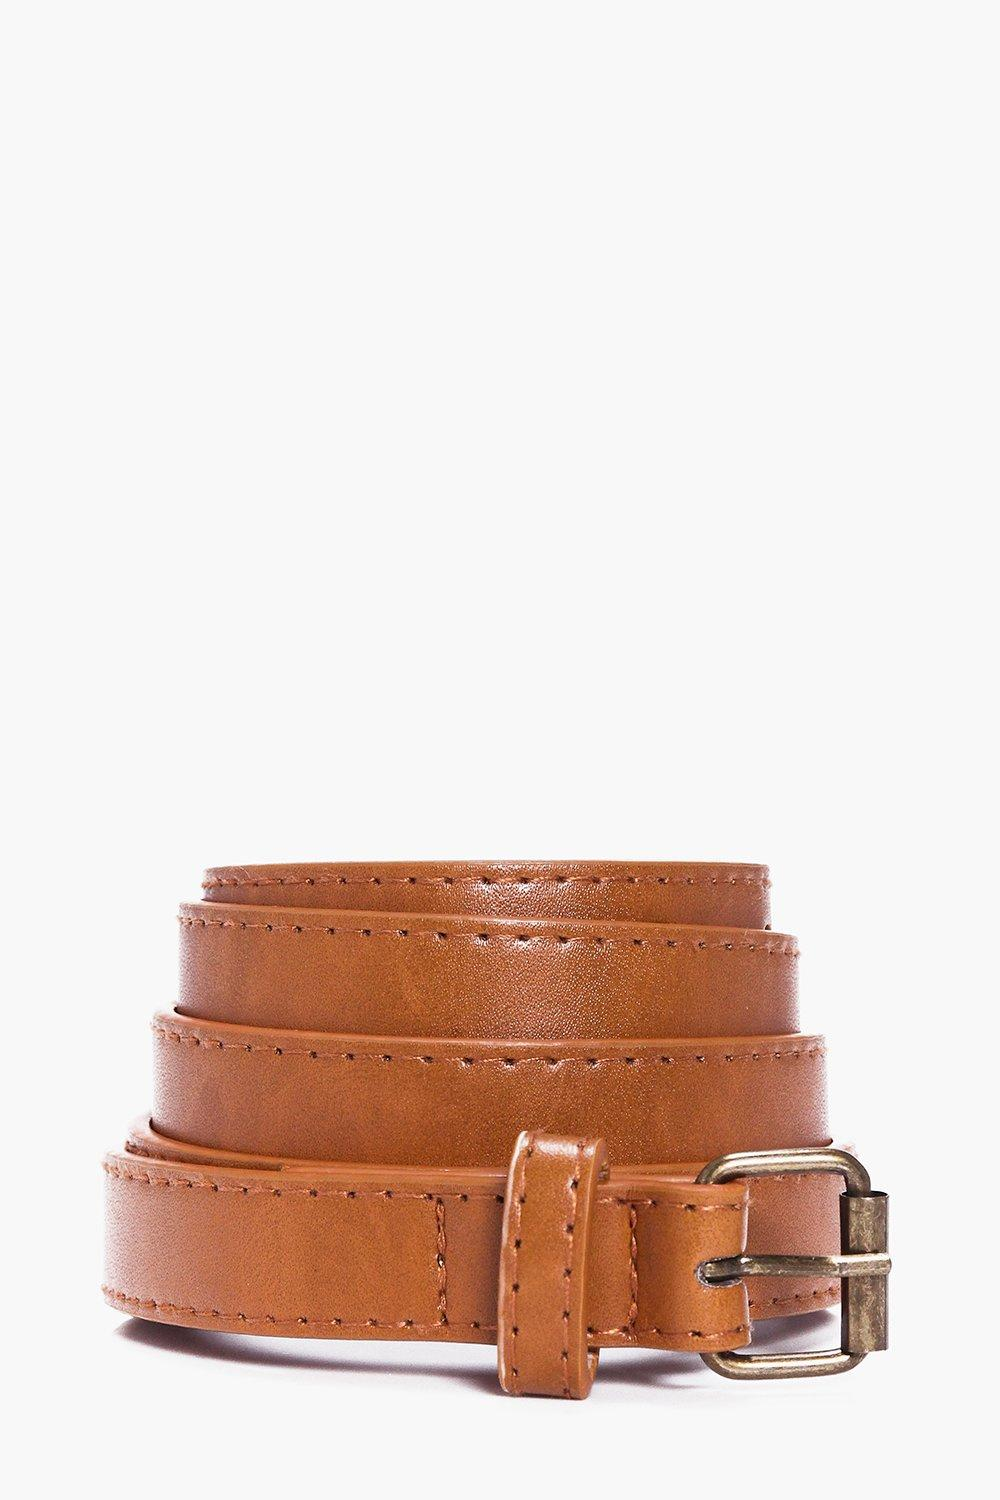 Leather Skinny Belt - tan - Faux Leather Skinny Be